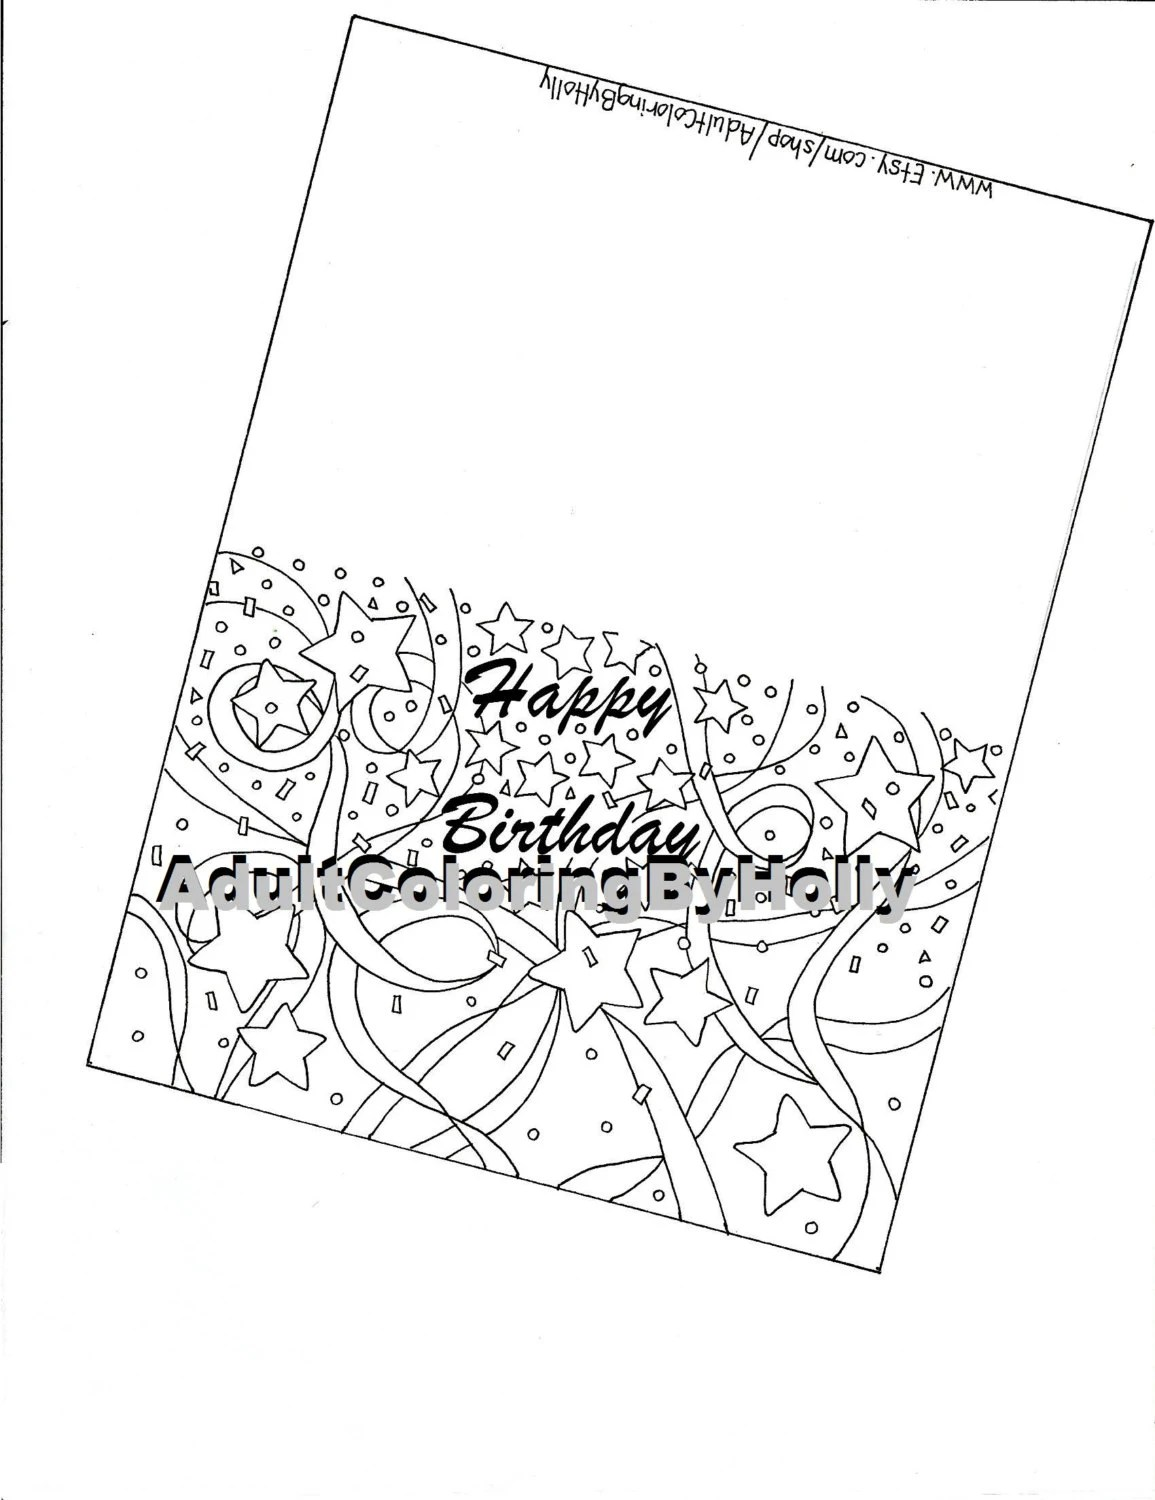 Coloring page Printable Digital Download Birthday Card